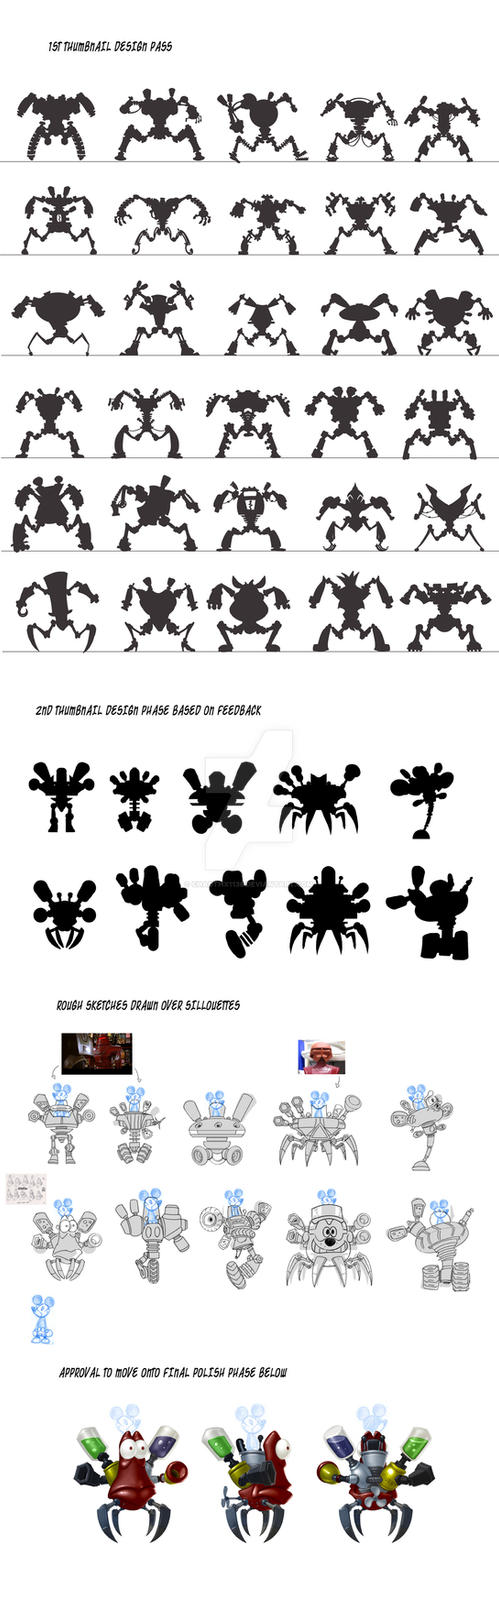 Disney Character Design Process : Epic mickey one of my character design process by